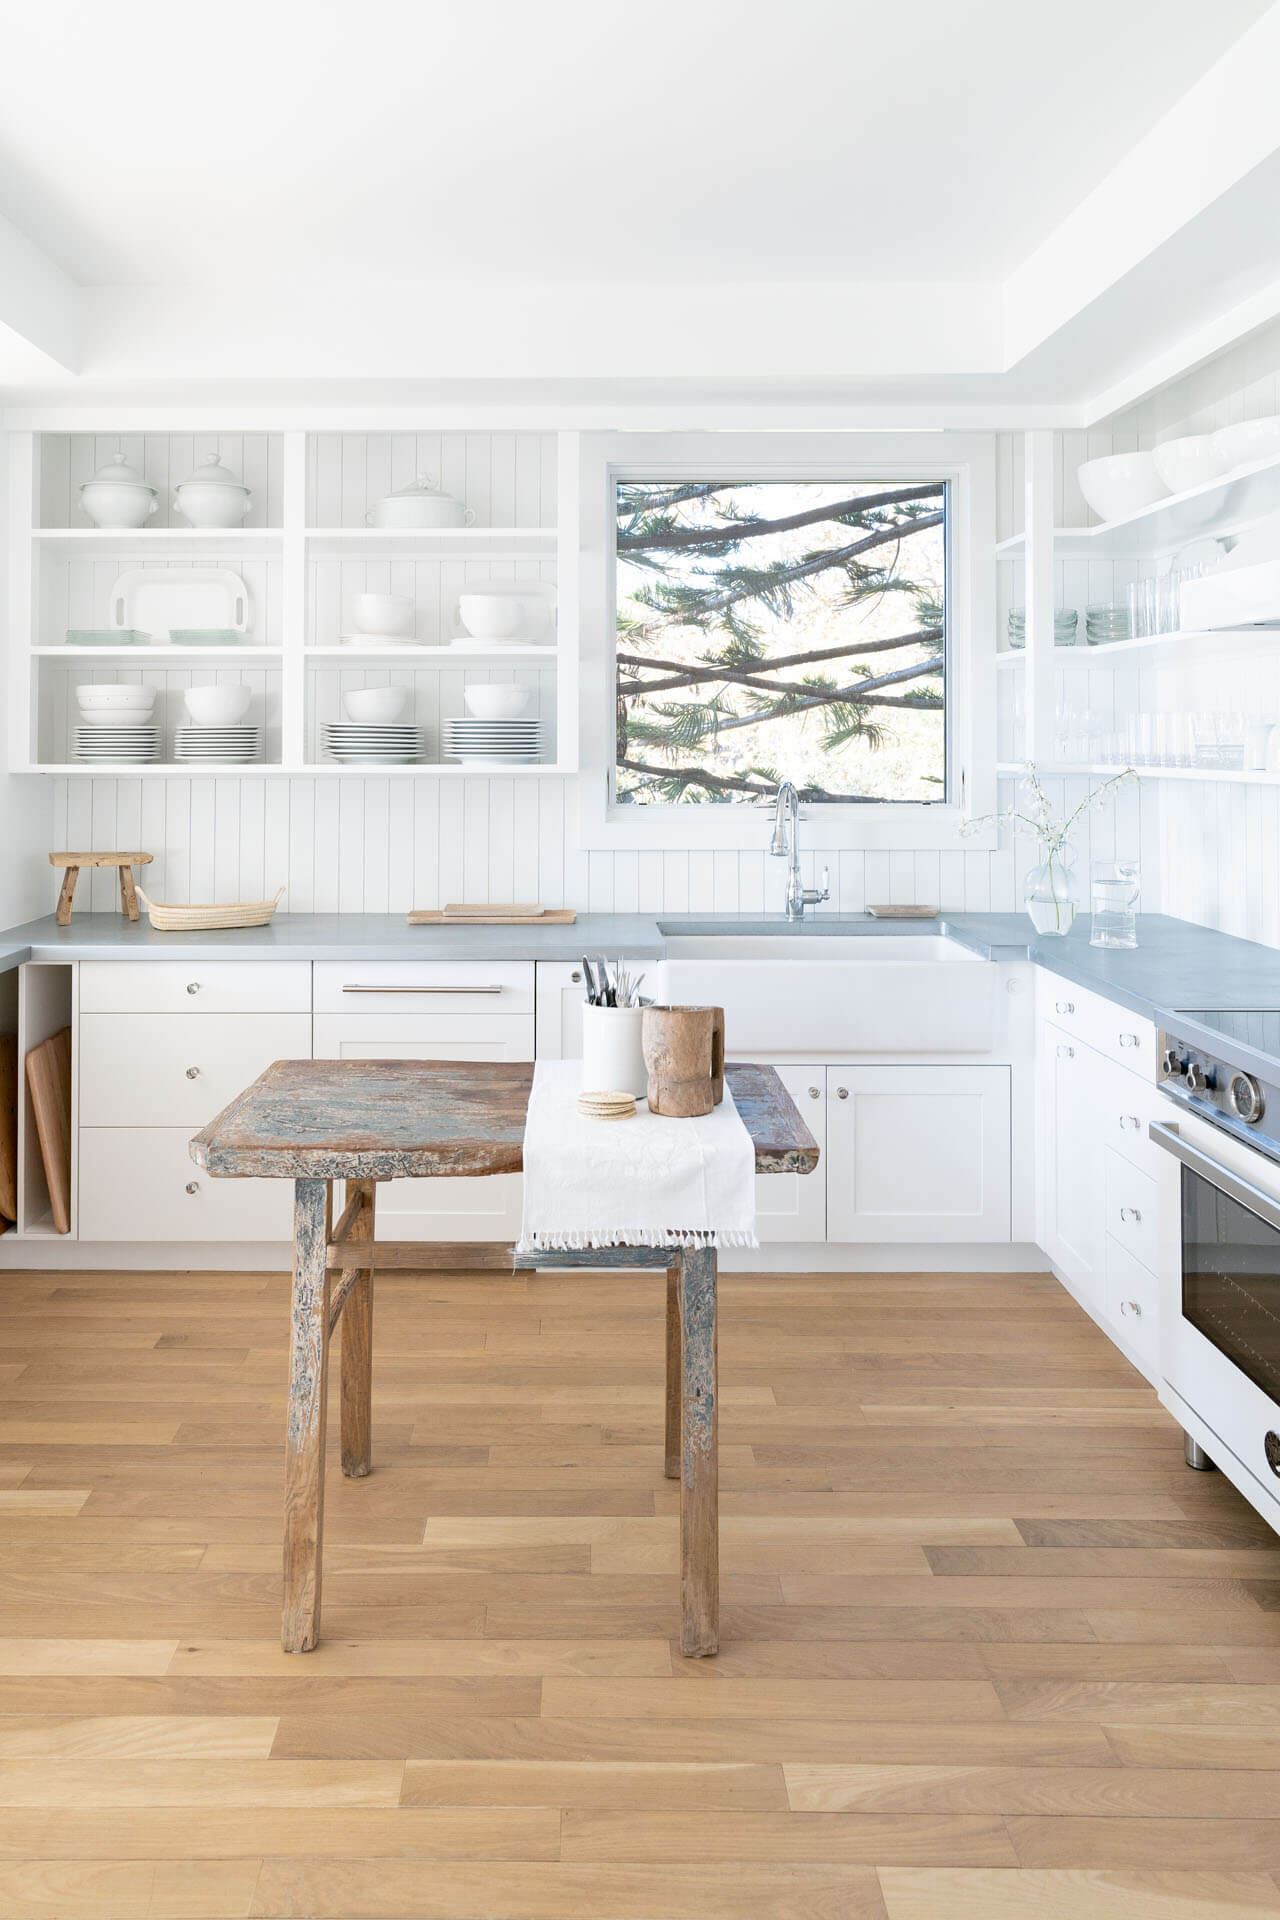 Light and airy kitchen with white cabinetry and natural hardwood flooring